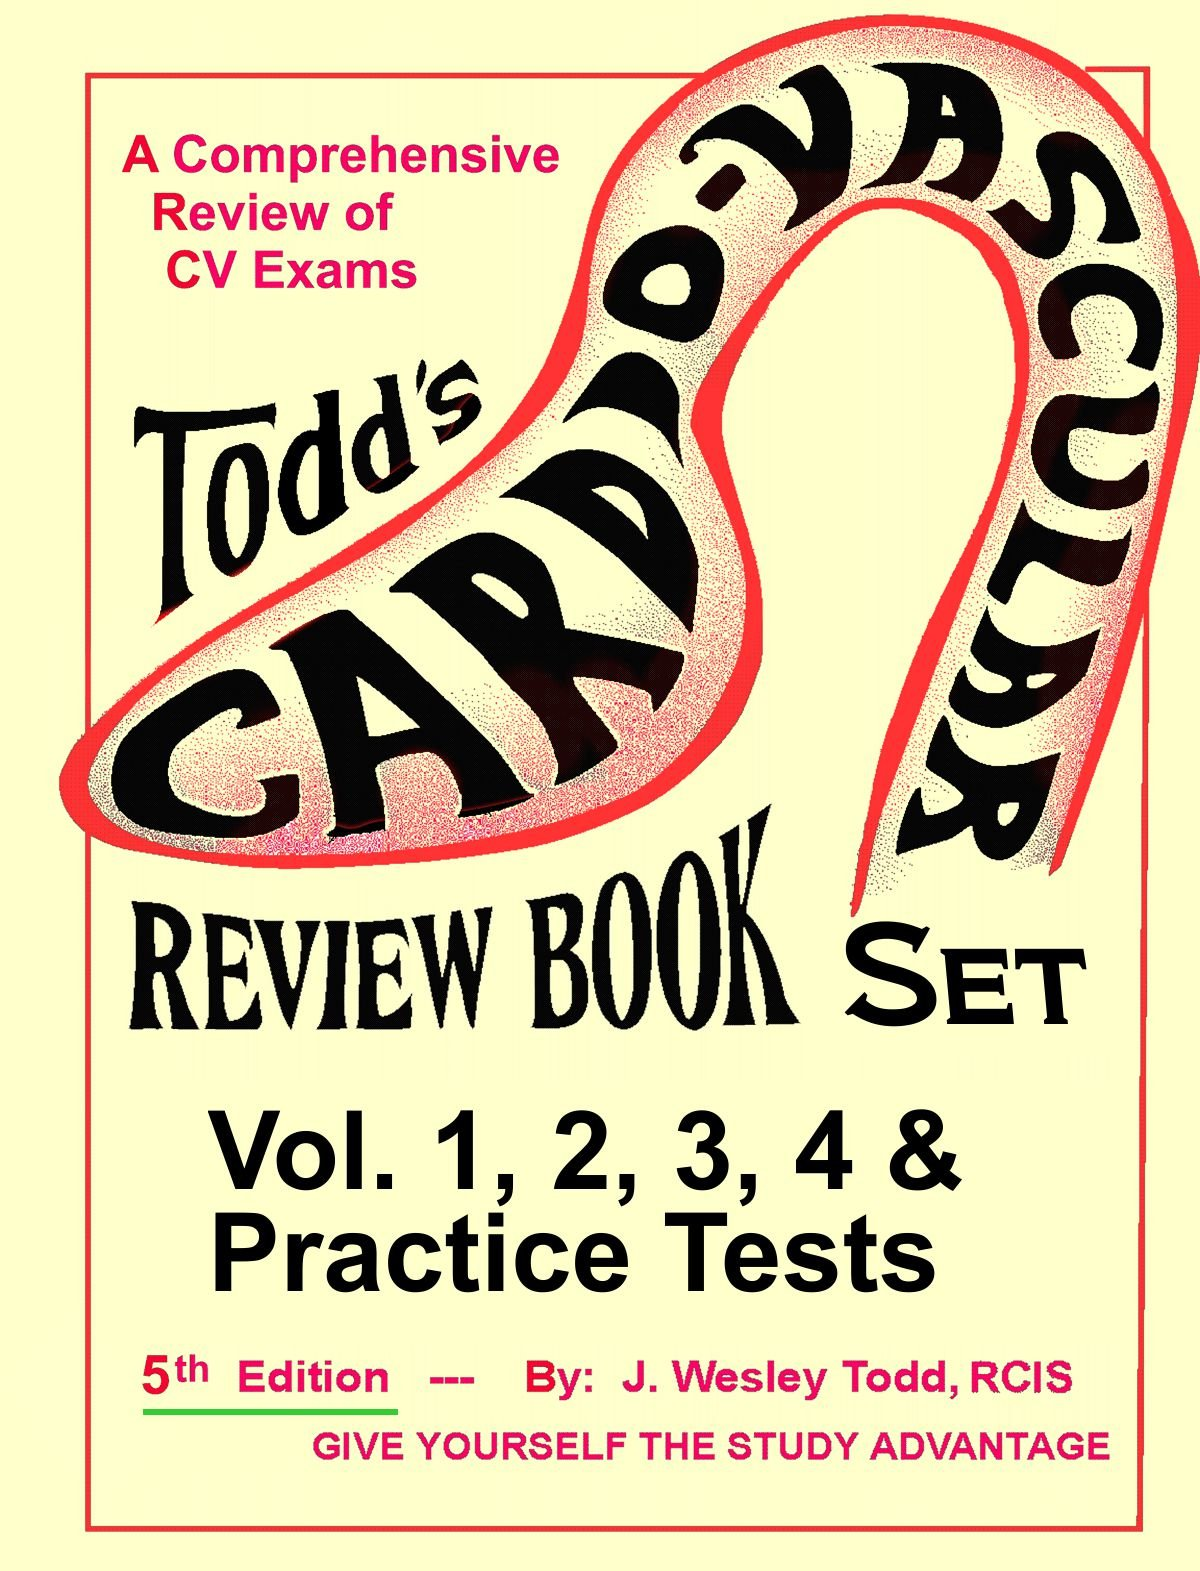 Amazon Buy Todds Cardiovascular Review Book The Complete